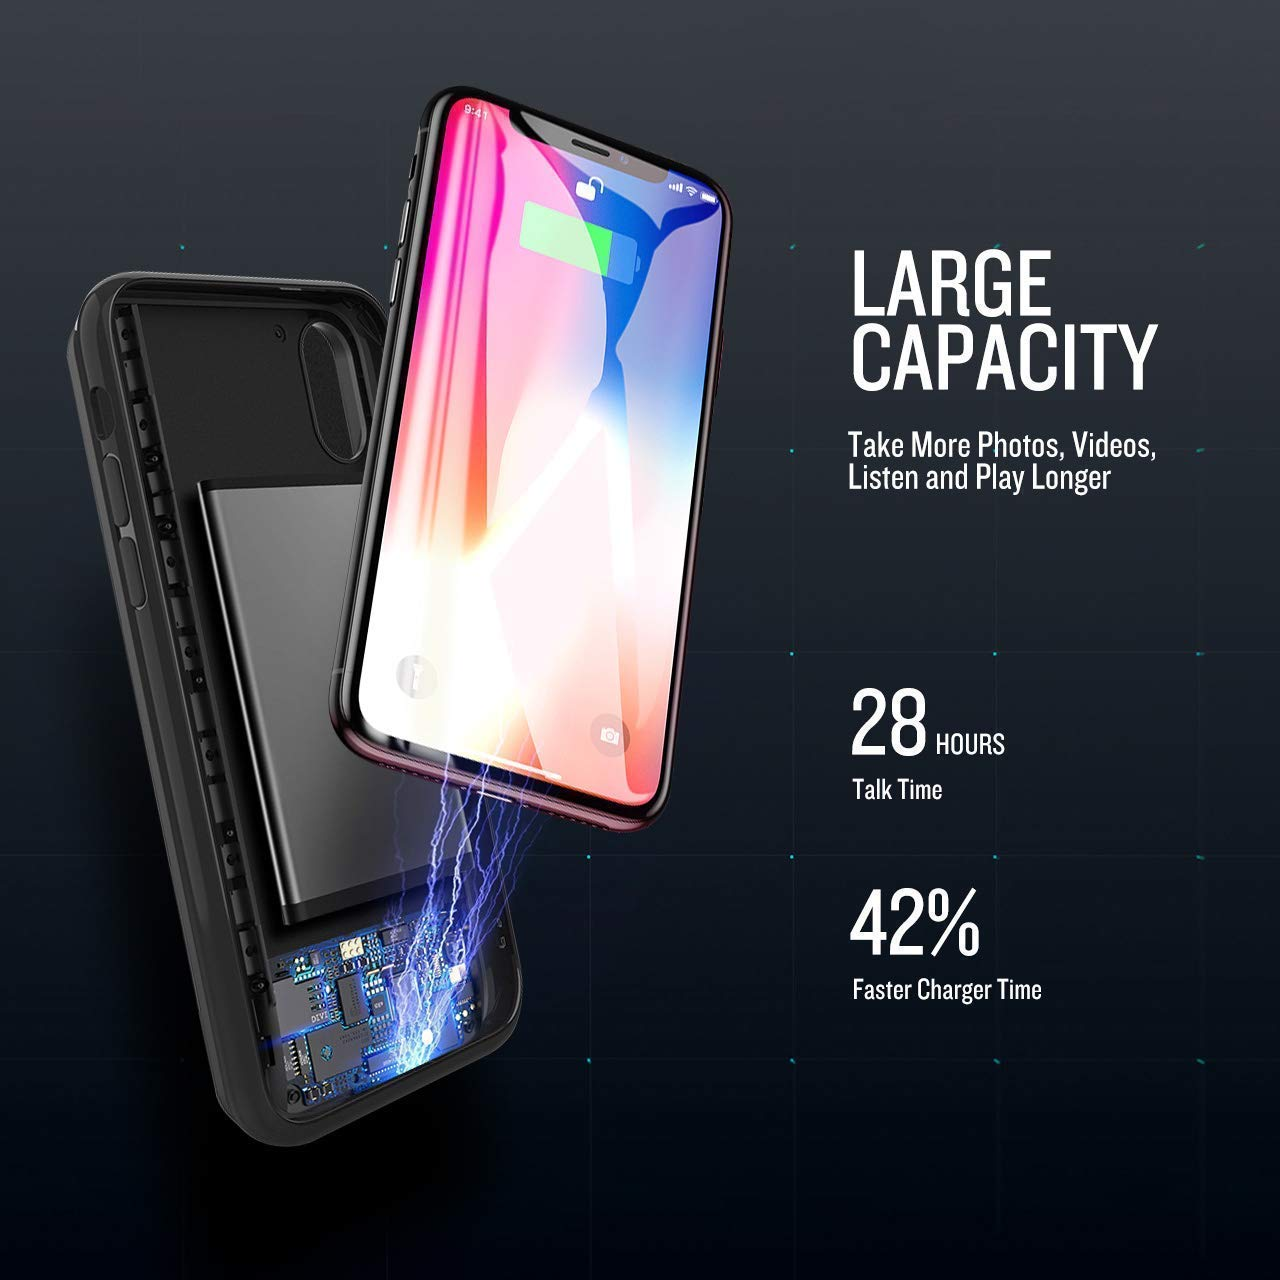 Rechargeable Protective Backup Charging Case Works Apple Phones 4000mAh Ultra Slim Portable Battery Power Charger Case iPhone X Battery Case Black